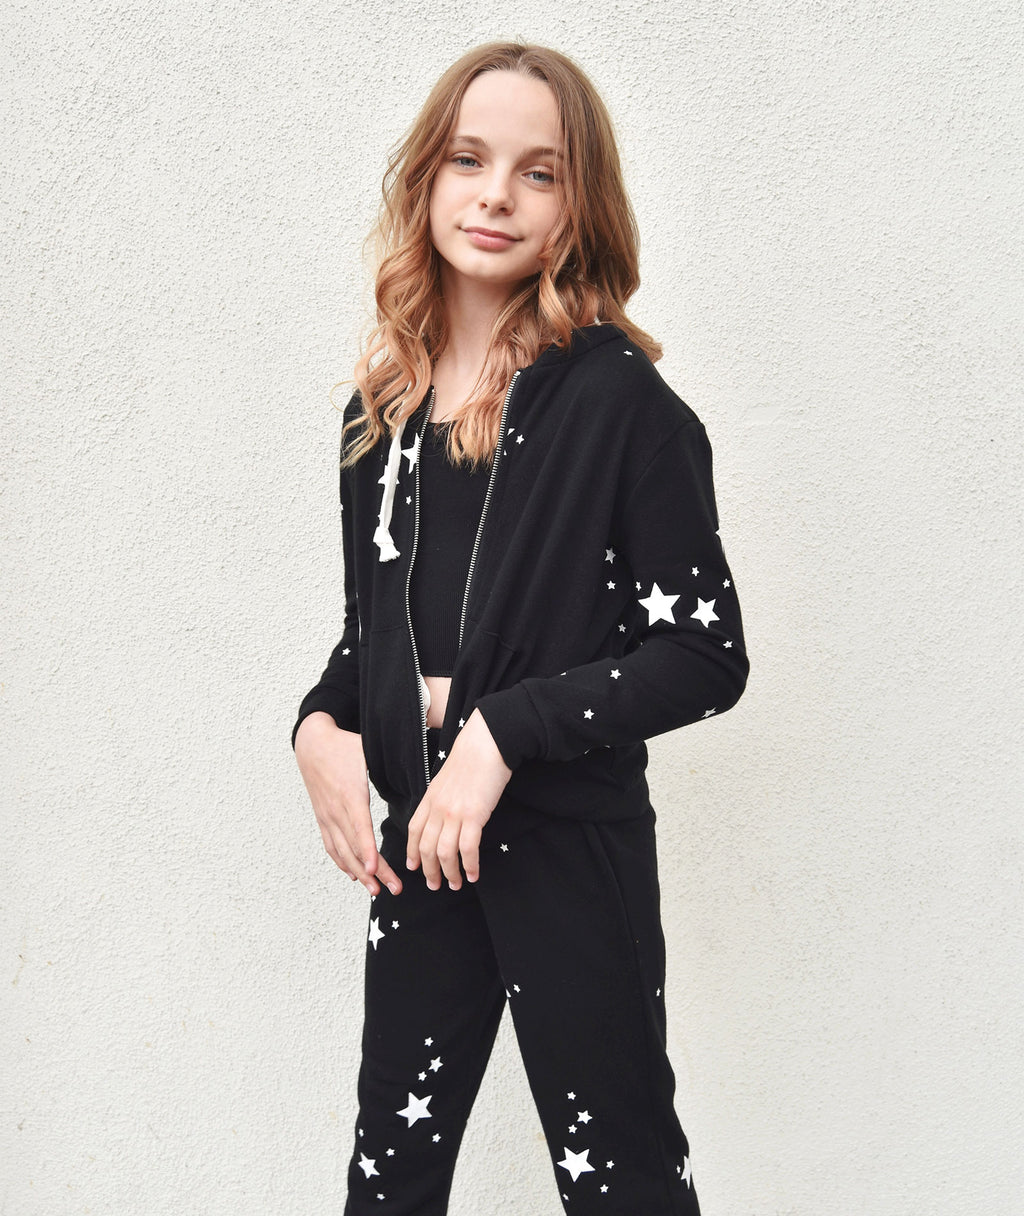 Katie J NYC Girls Faith Black Star Zip Hoodie